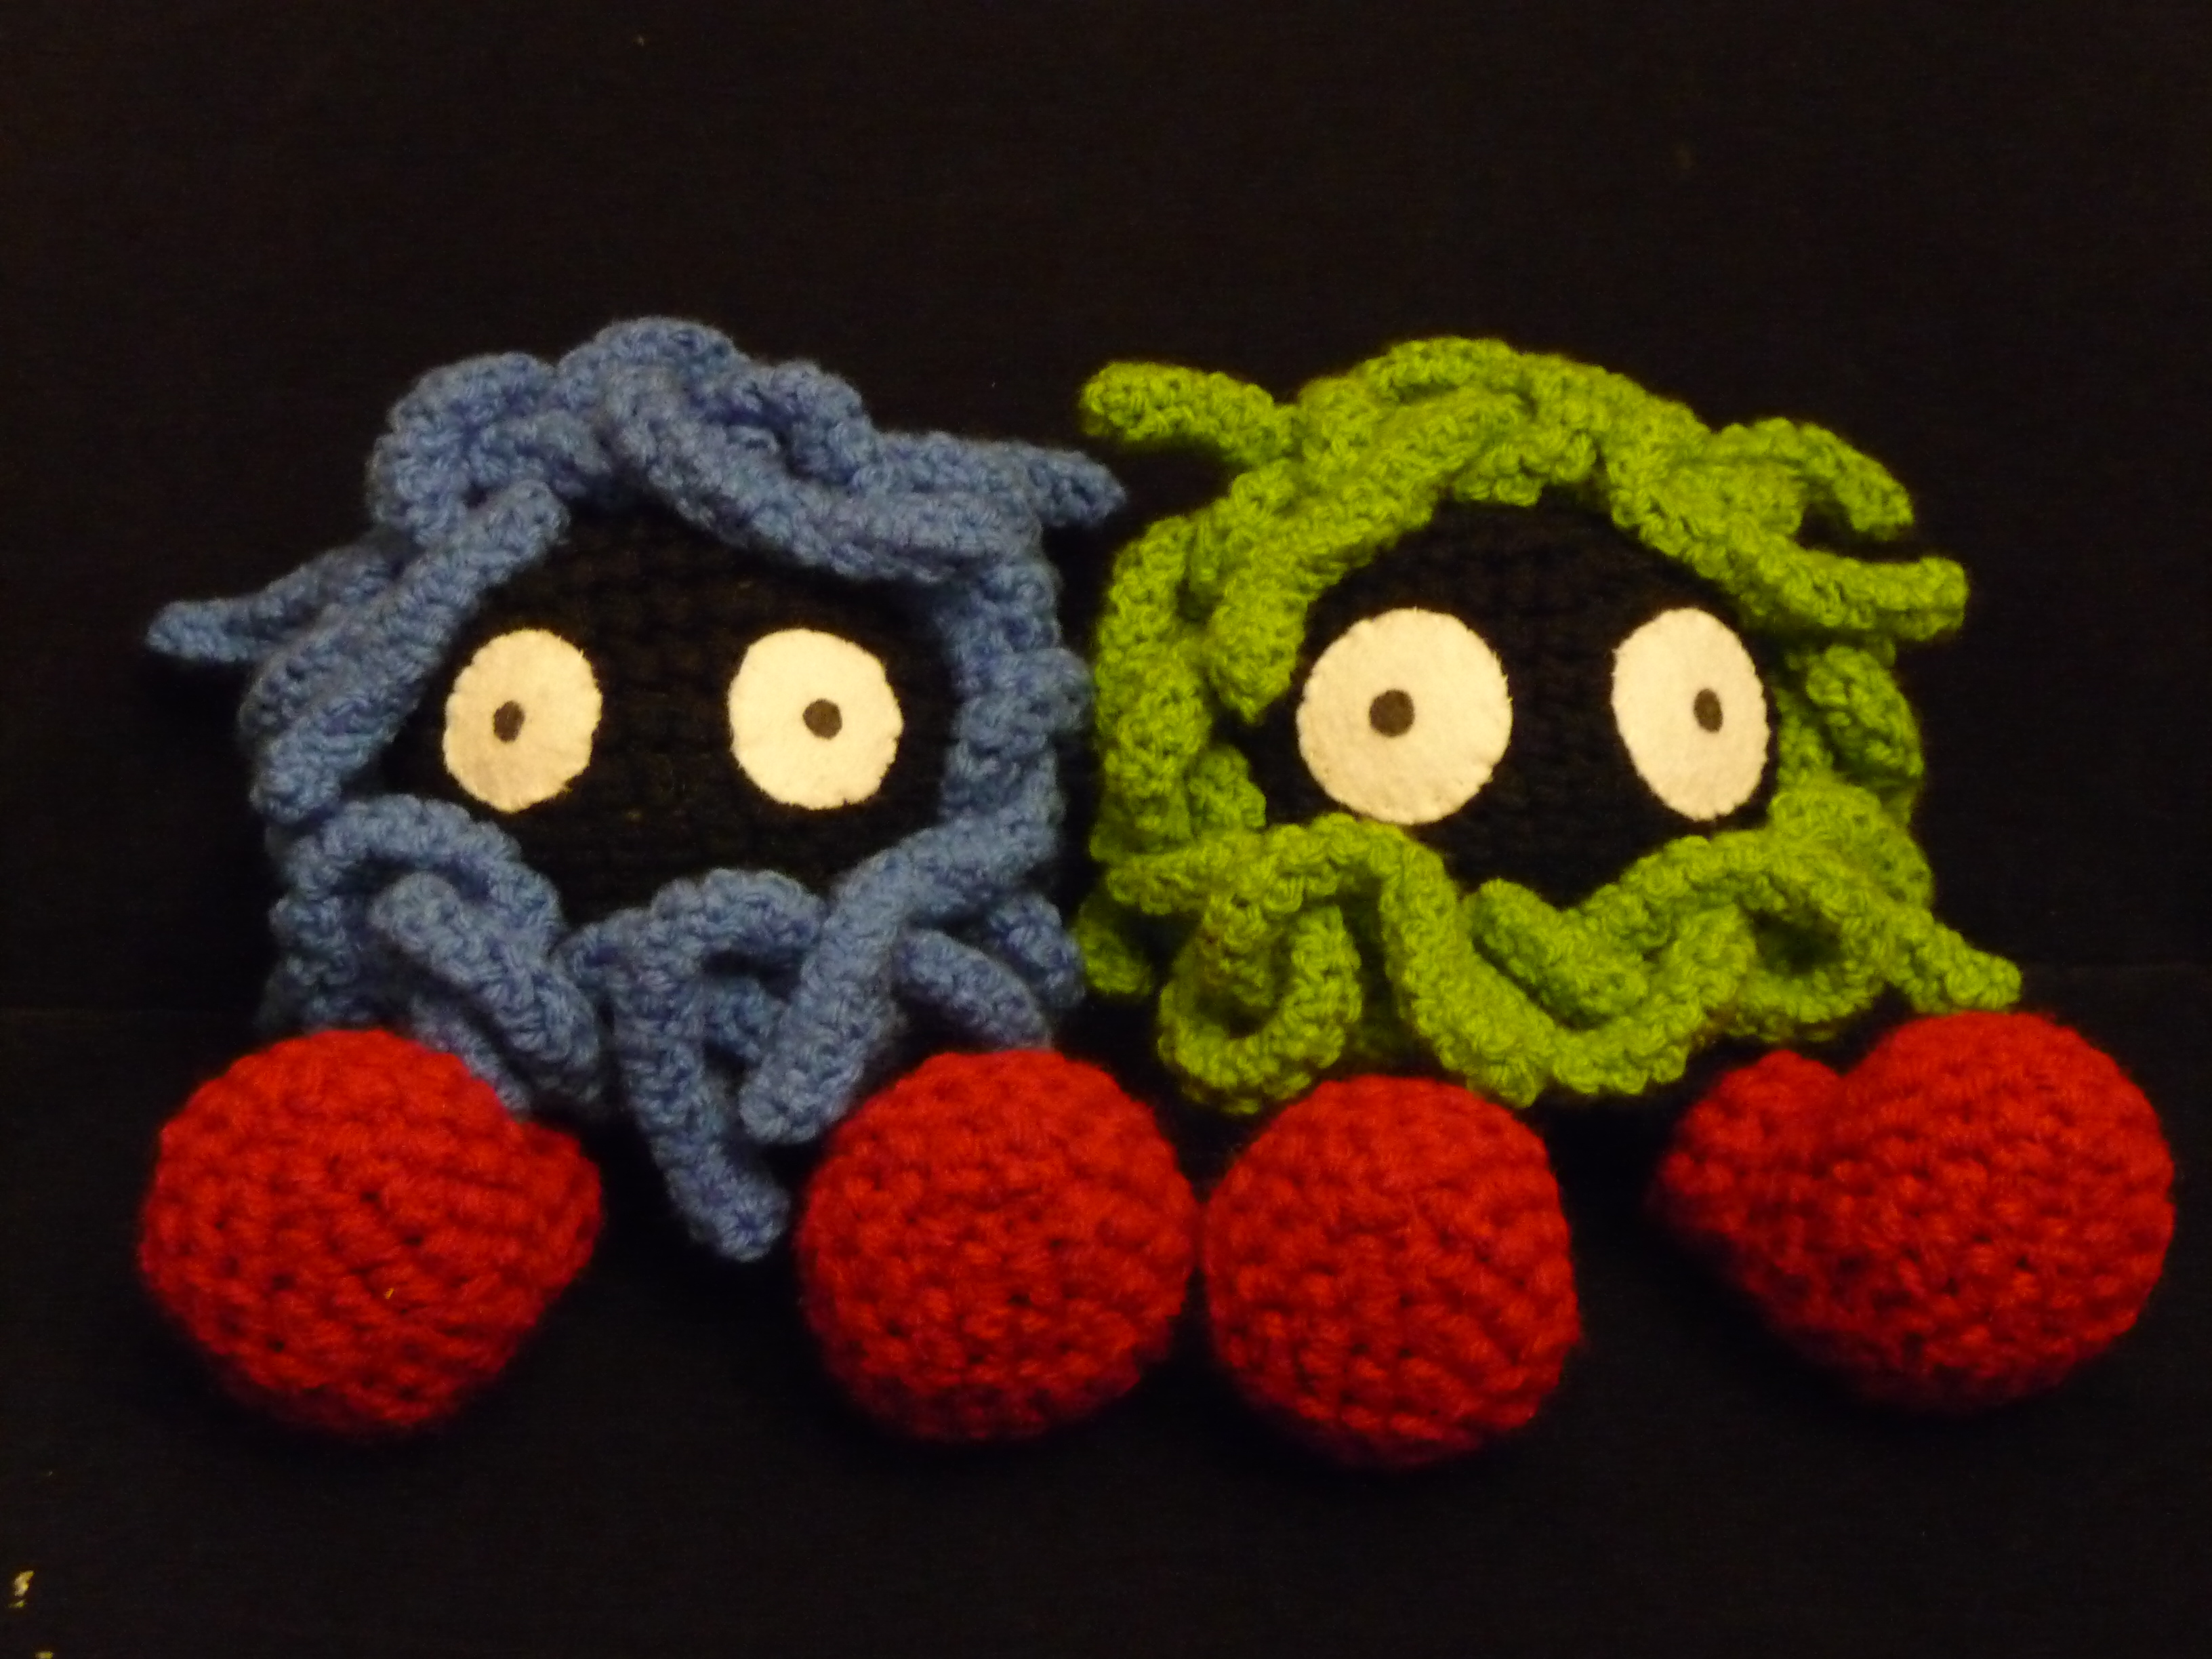 two crocheted versions of the pokemon Tangela, one in blue and the other in green. This is the front view.